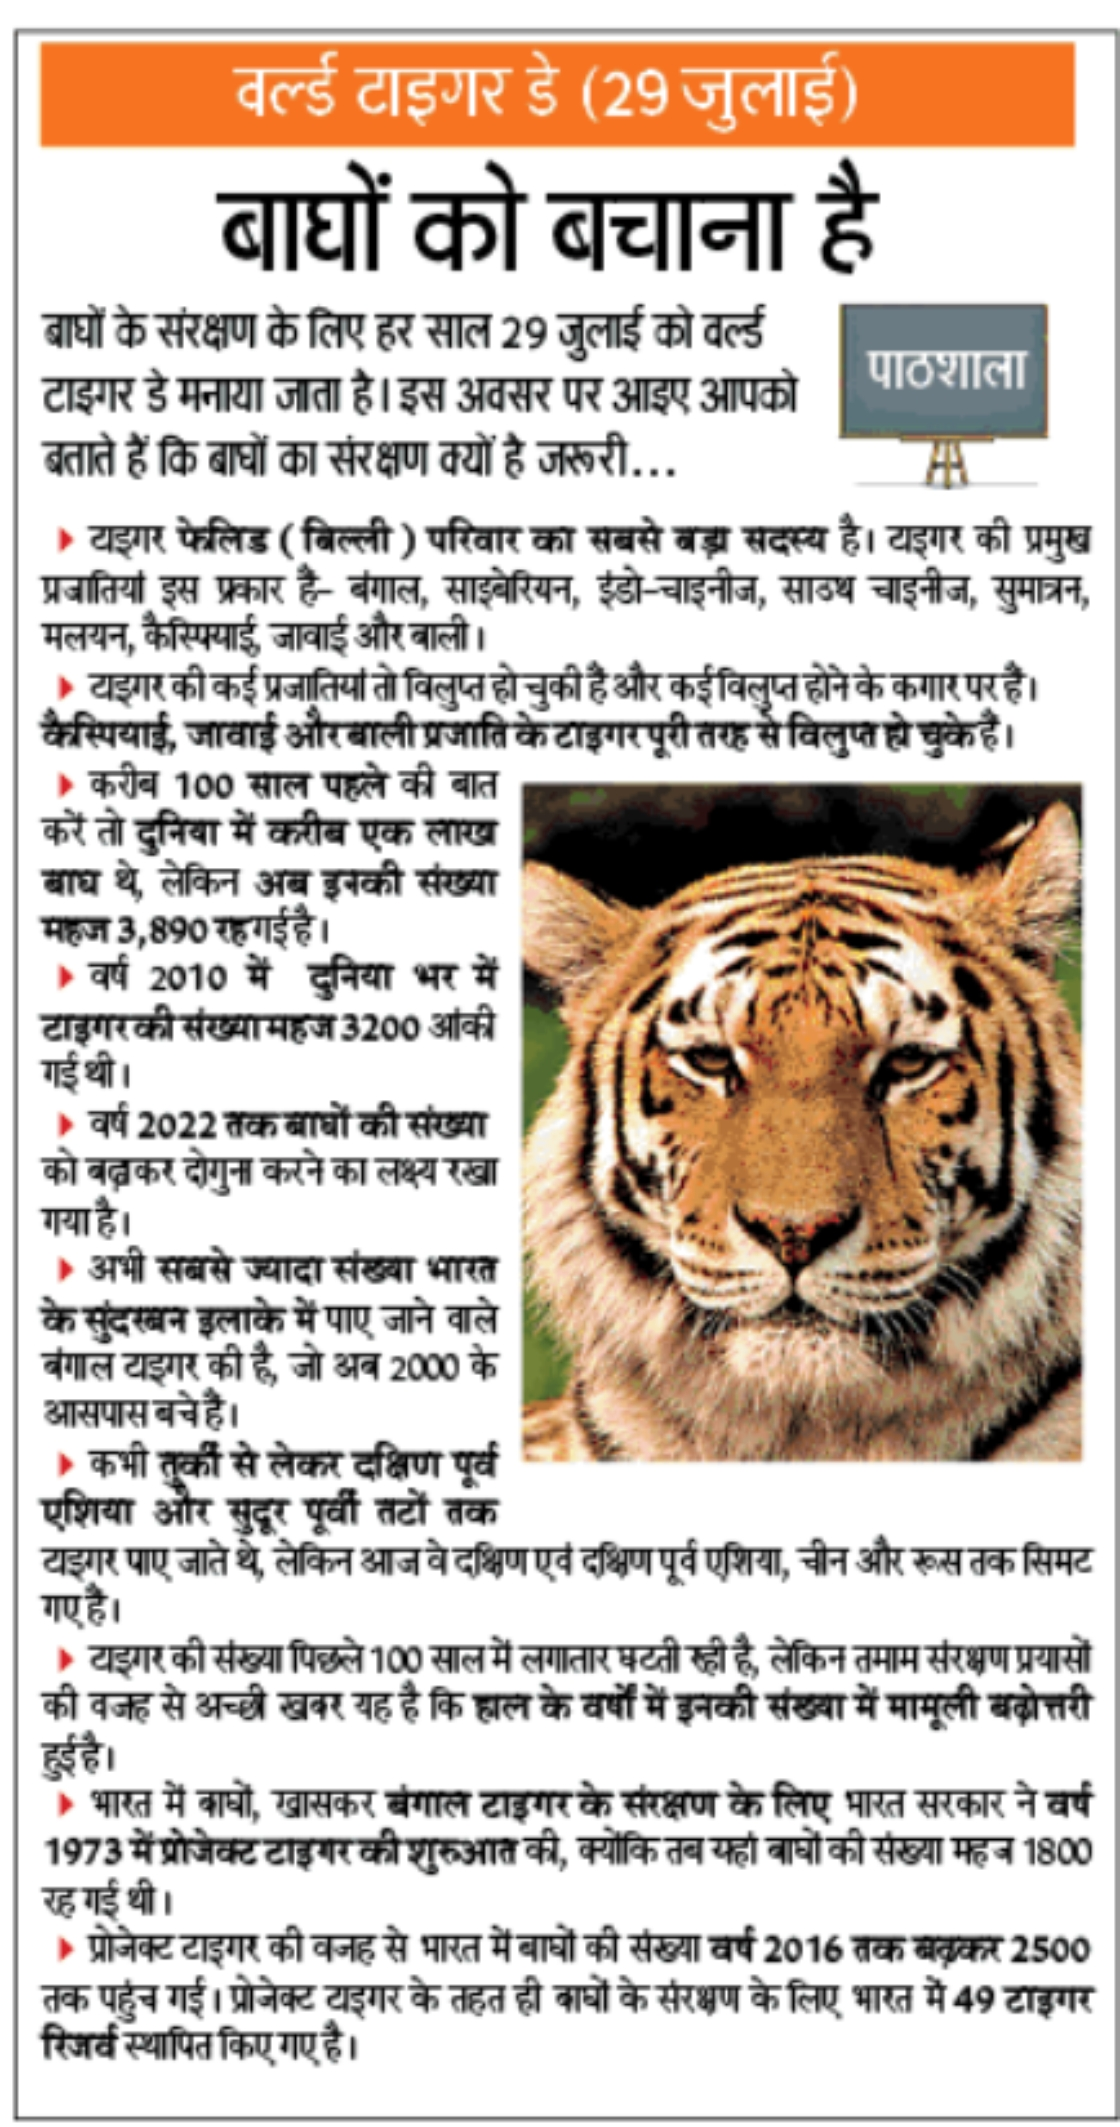 hindi essay on tiger My favorite wild animal tiger essay • idre fórum  how to write paper  conference essay on heart rate essay on tuberculosis in hindi california high  school exit exam essay  essay on tiger for children and students  indiacelebratingcom.